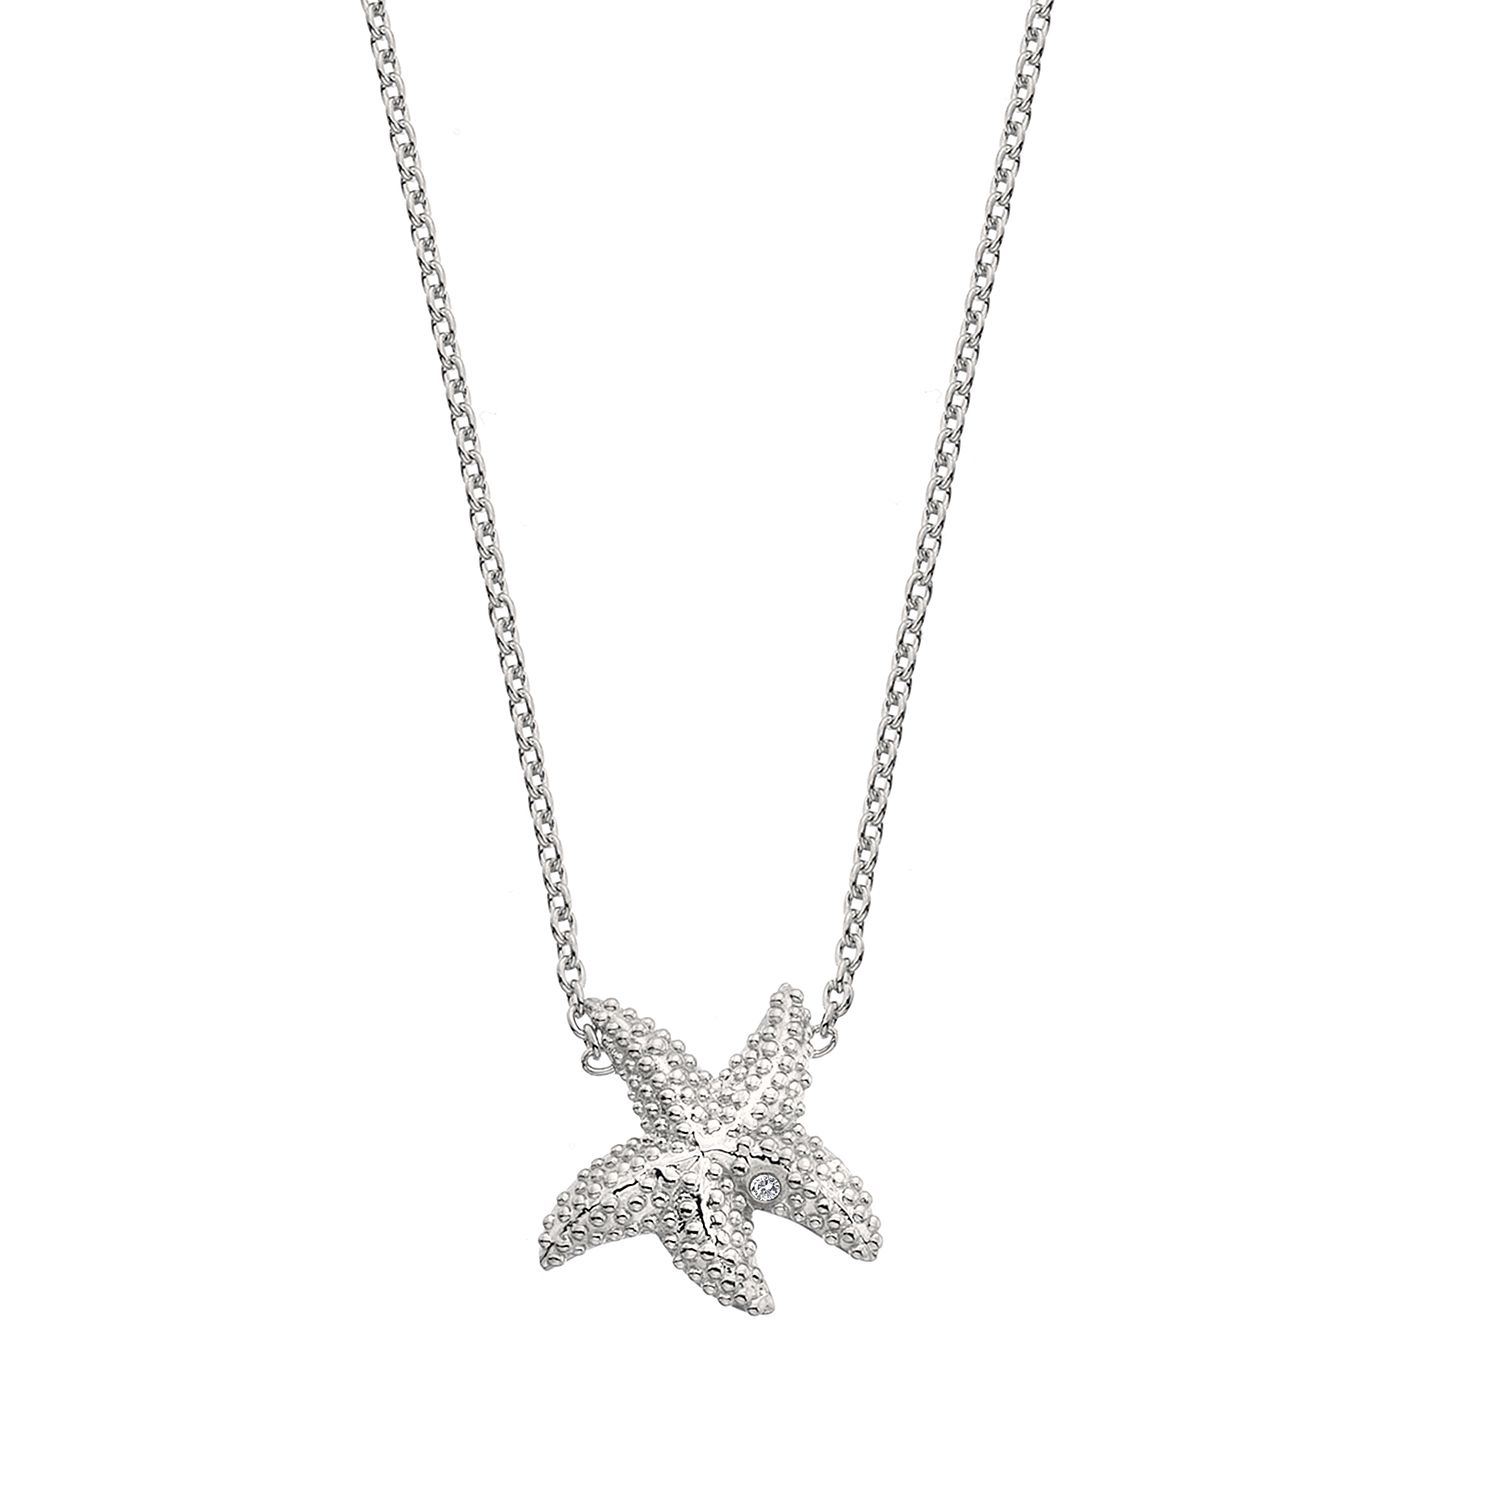 Hot Diamonds Sterling Silver Starfish Necklace - Product number 4587138